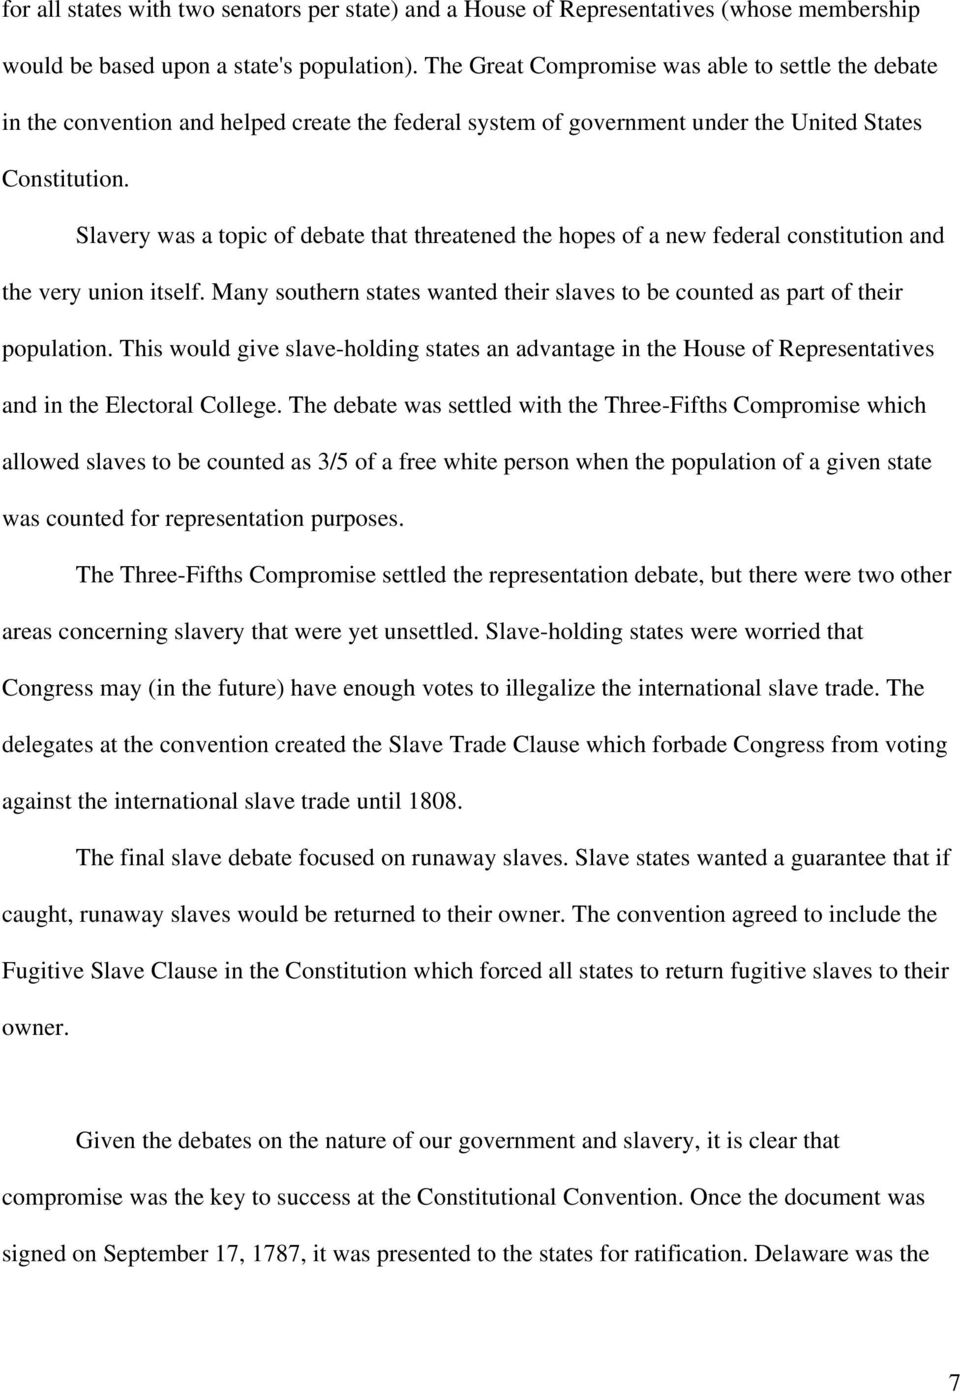 hight resolution of Constitutional Convention: A Decision-Making Activity (Designed for 8 th  Grade Social Studies Students) - PDF Free Download